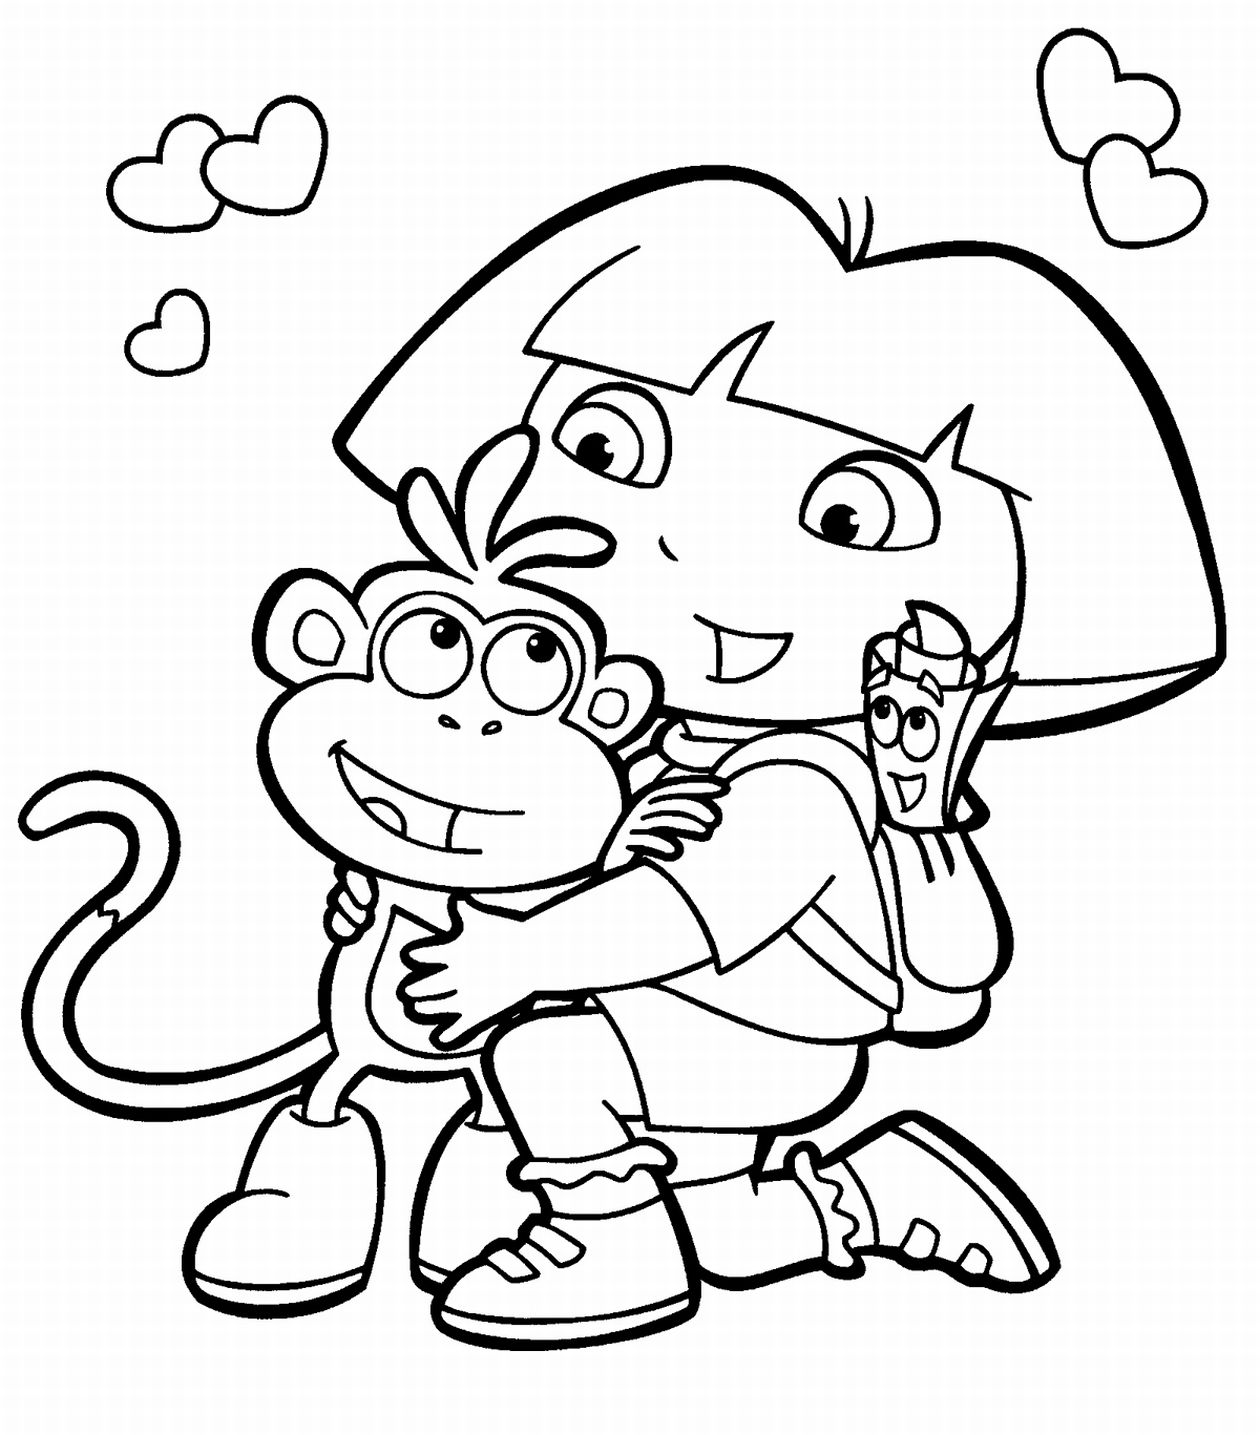 dora coloring print download dora coloring pages to learn new things coloring dora